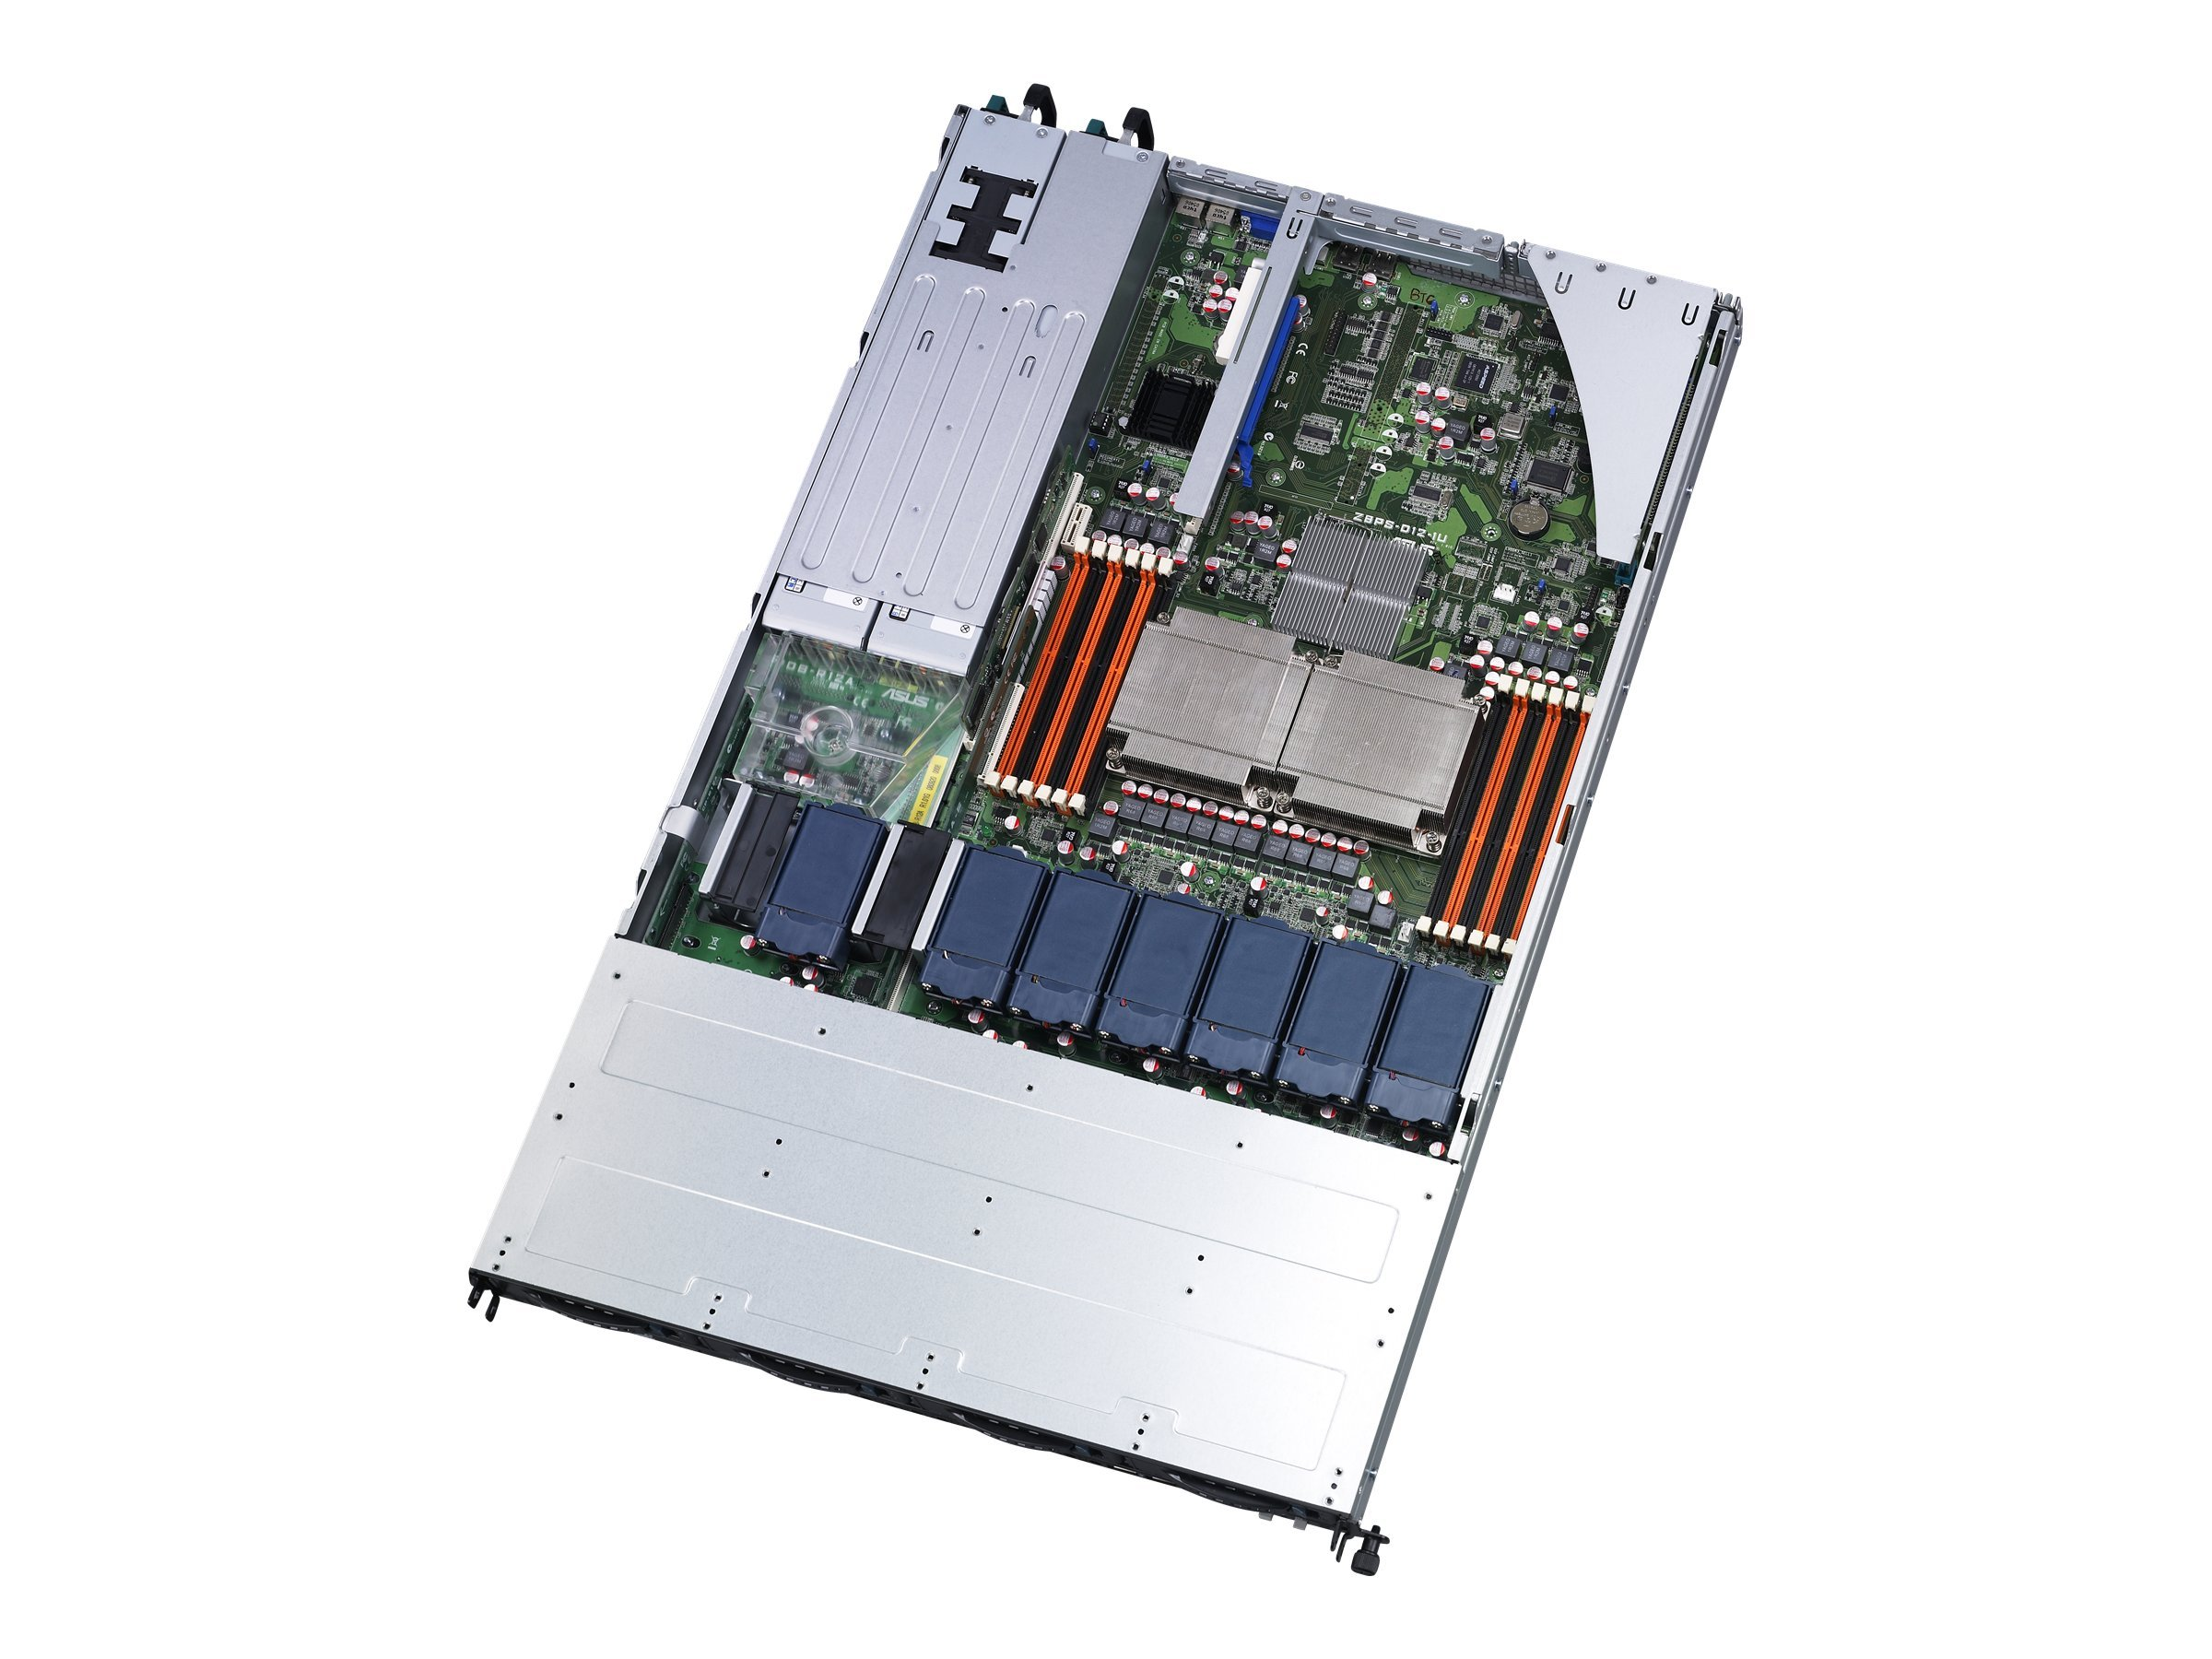 Asus RS700-E6-ERS Image 2